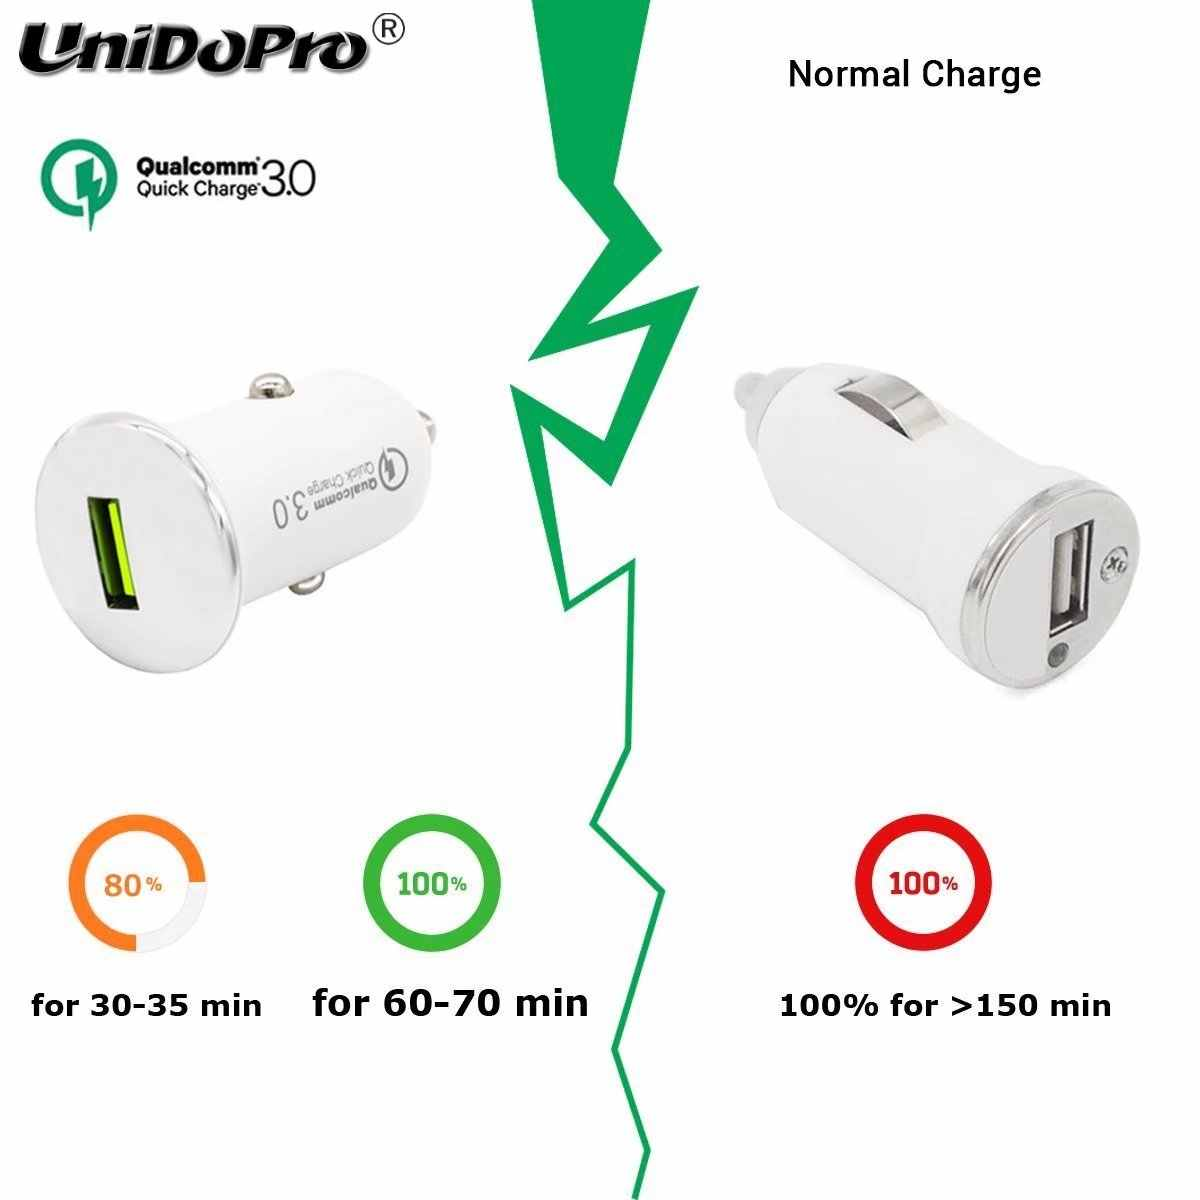 Quick Charge 3.0 5V 3A Smart Fast Car Charger for Asus ZenPad Z8s ZT582KL, Z8 ZT582KL, Zenpad 10 Z301ML QC 3.0 Charging Adapter